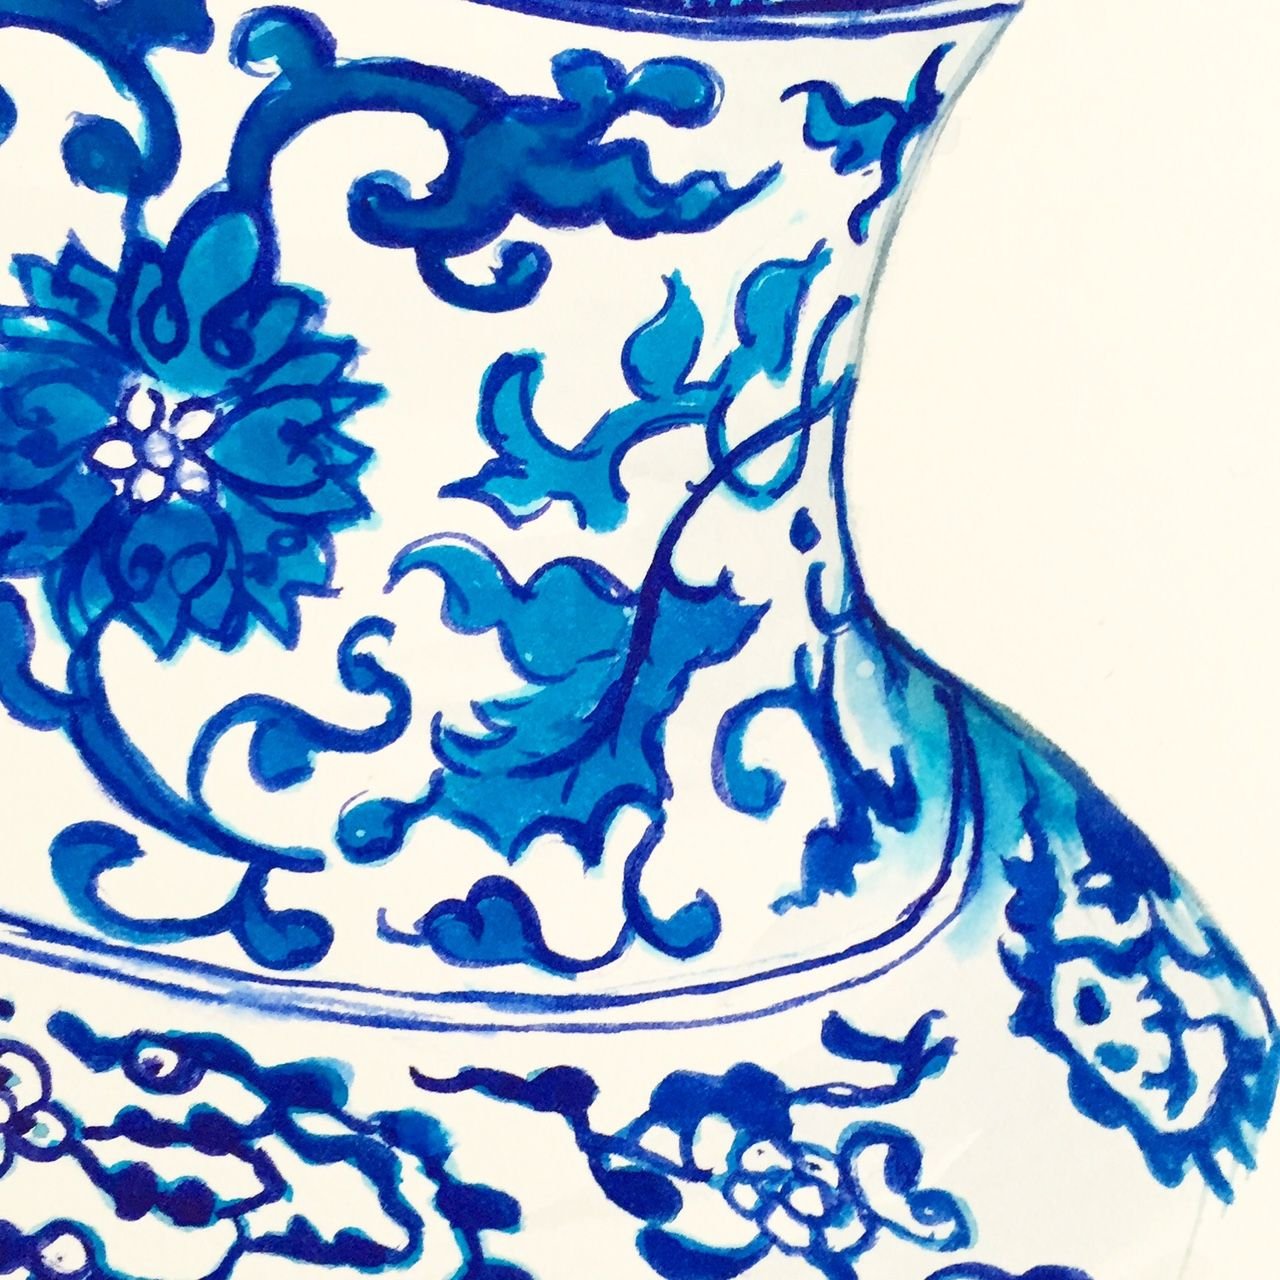 Blue and white china watercolour painting by Tracey Fletcher King... I am so obsessed with painting blue and white and chinoiserie at the moment